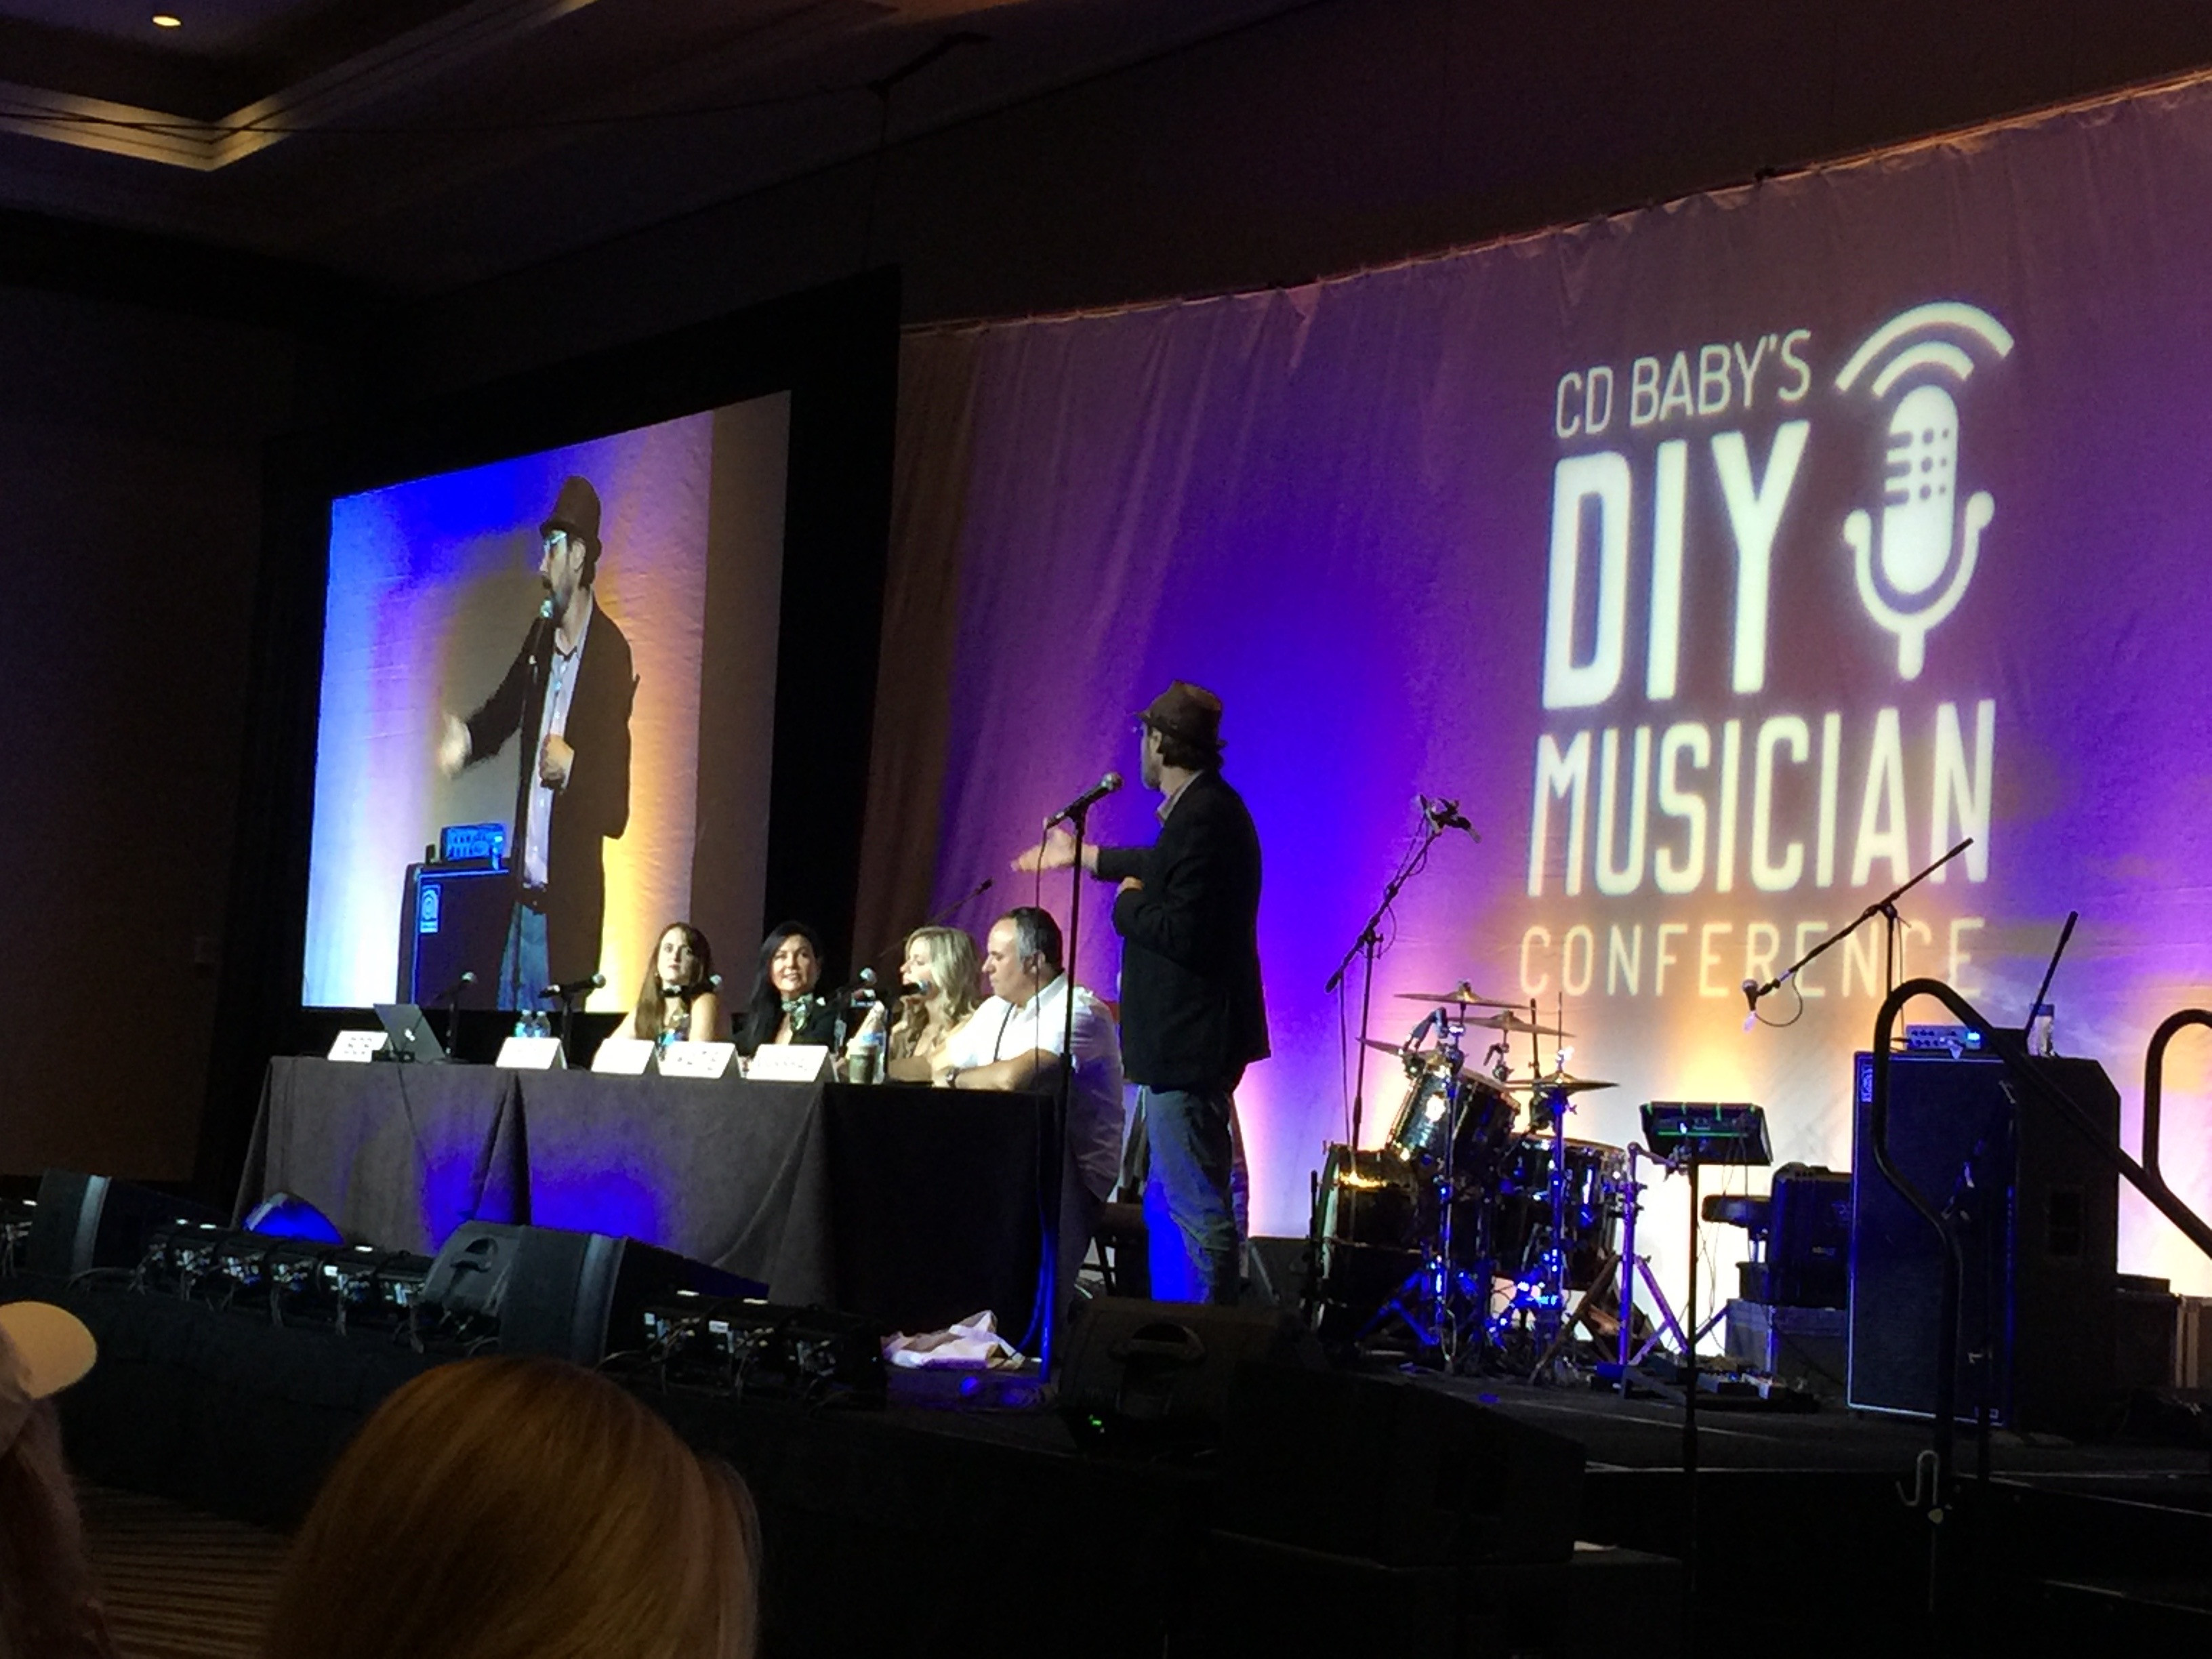 Best ideas about Cd Baby DIY Conference . Save or Pin A Roadkill Opera Now.